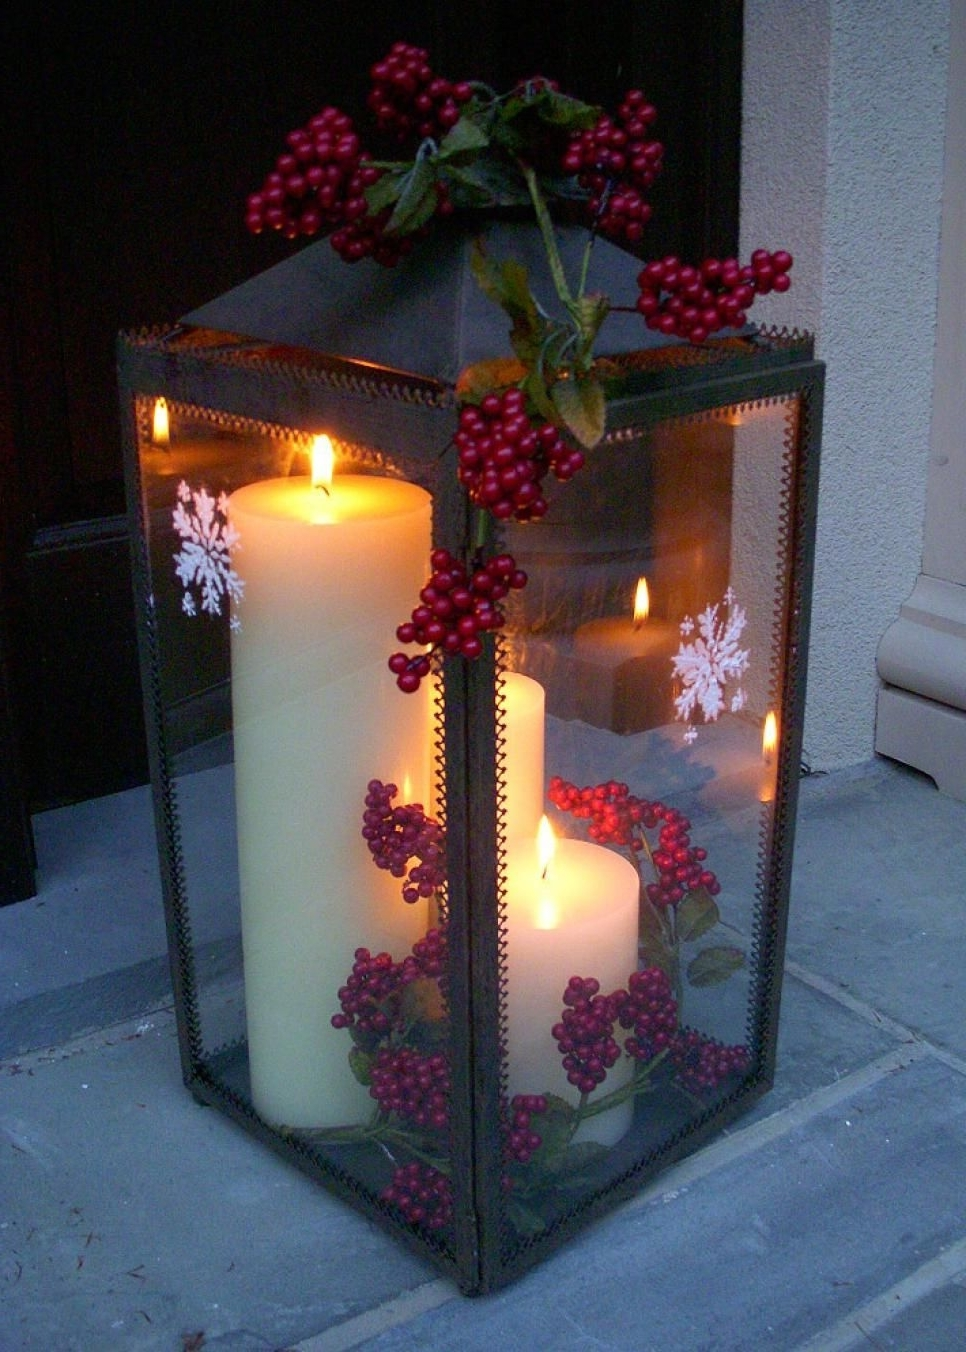 Newest Outdoor Holiday Lanterns Intended For 35+ Crafty Outdoor Holiday Decorating Ideas (View 12 of 20)